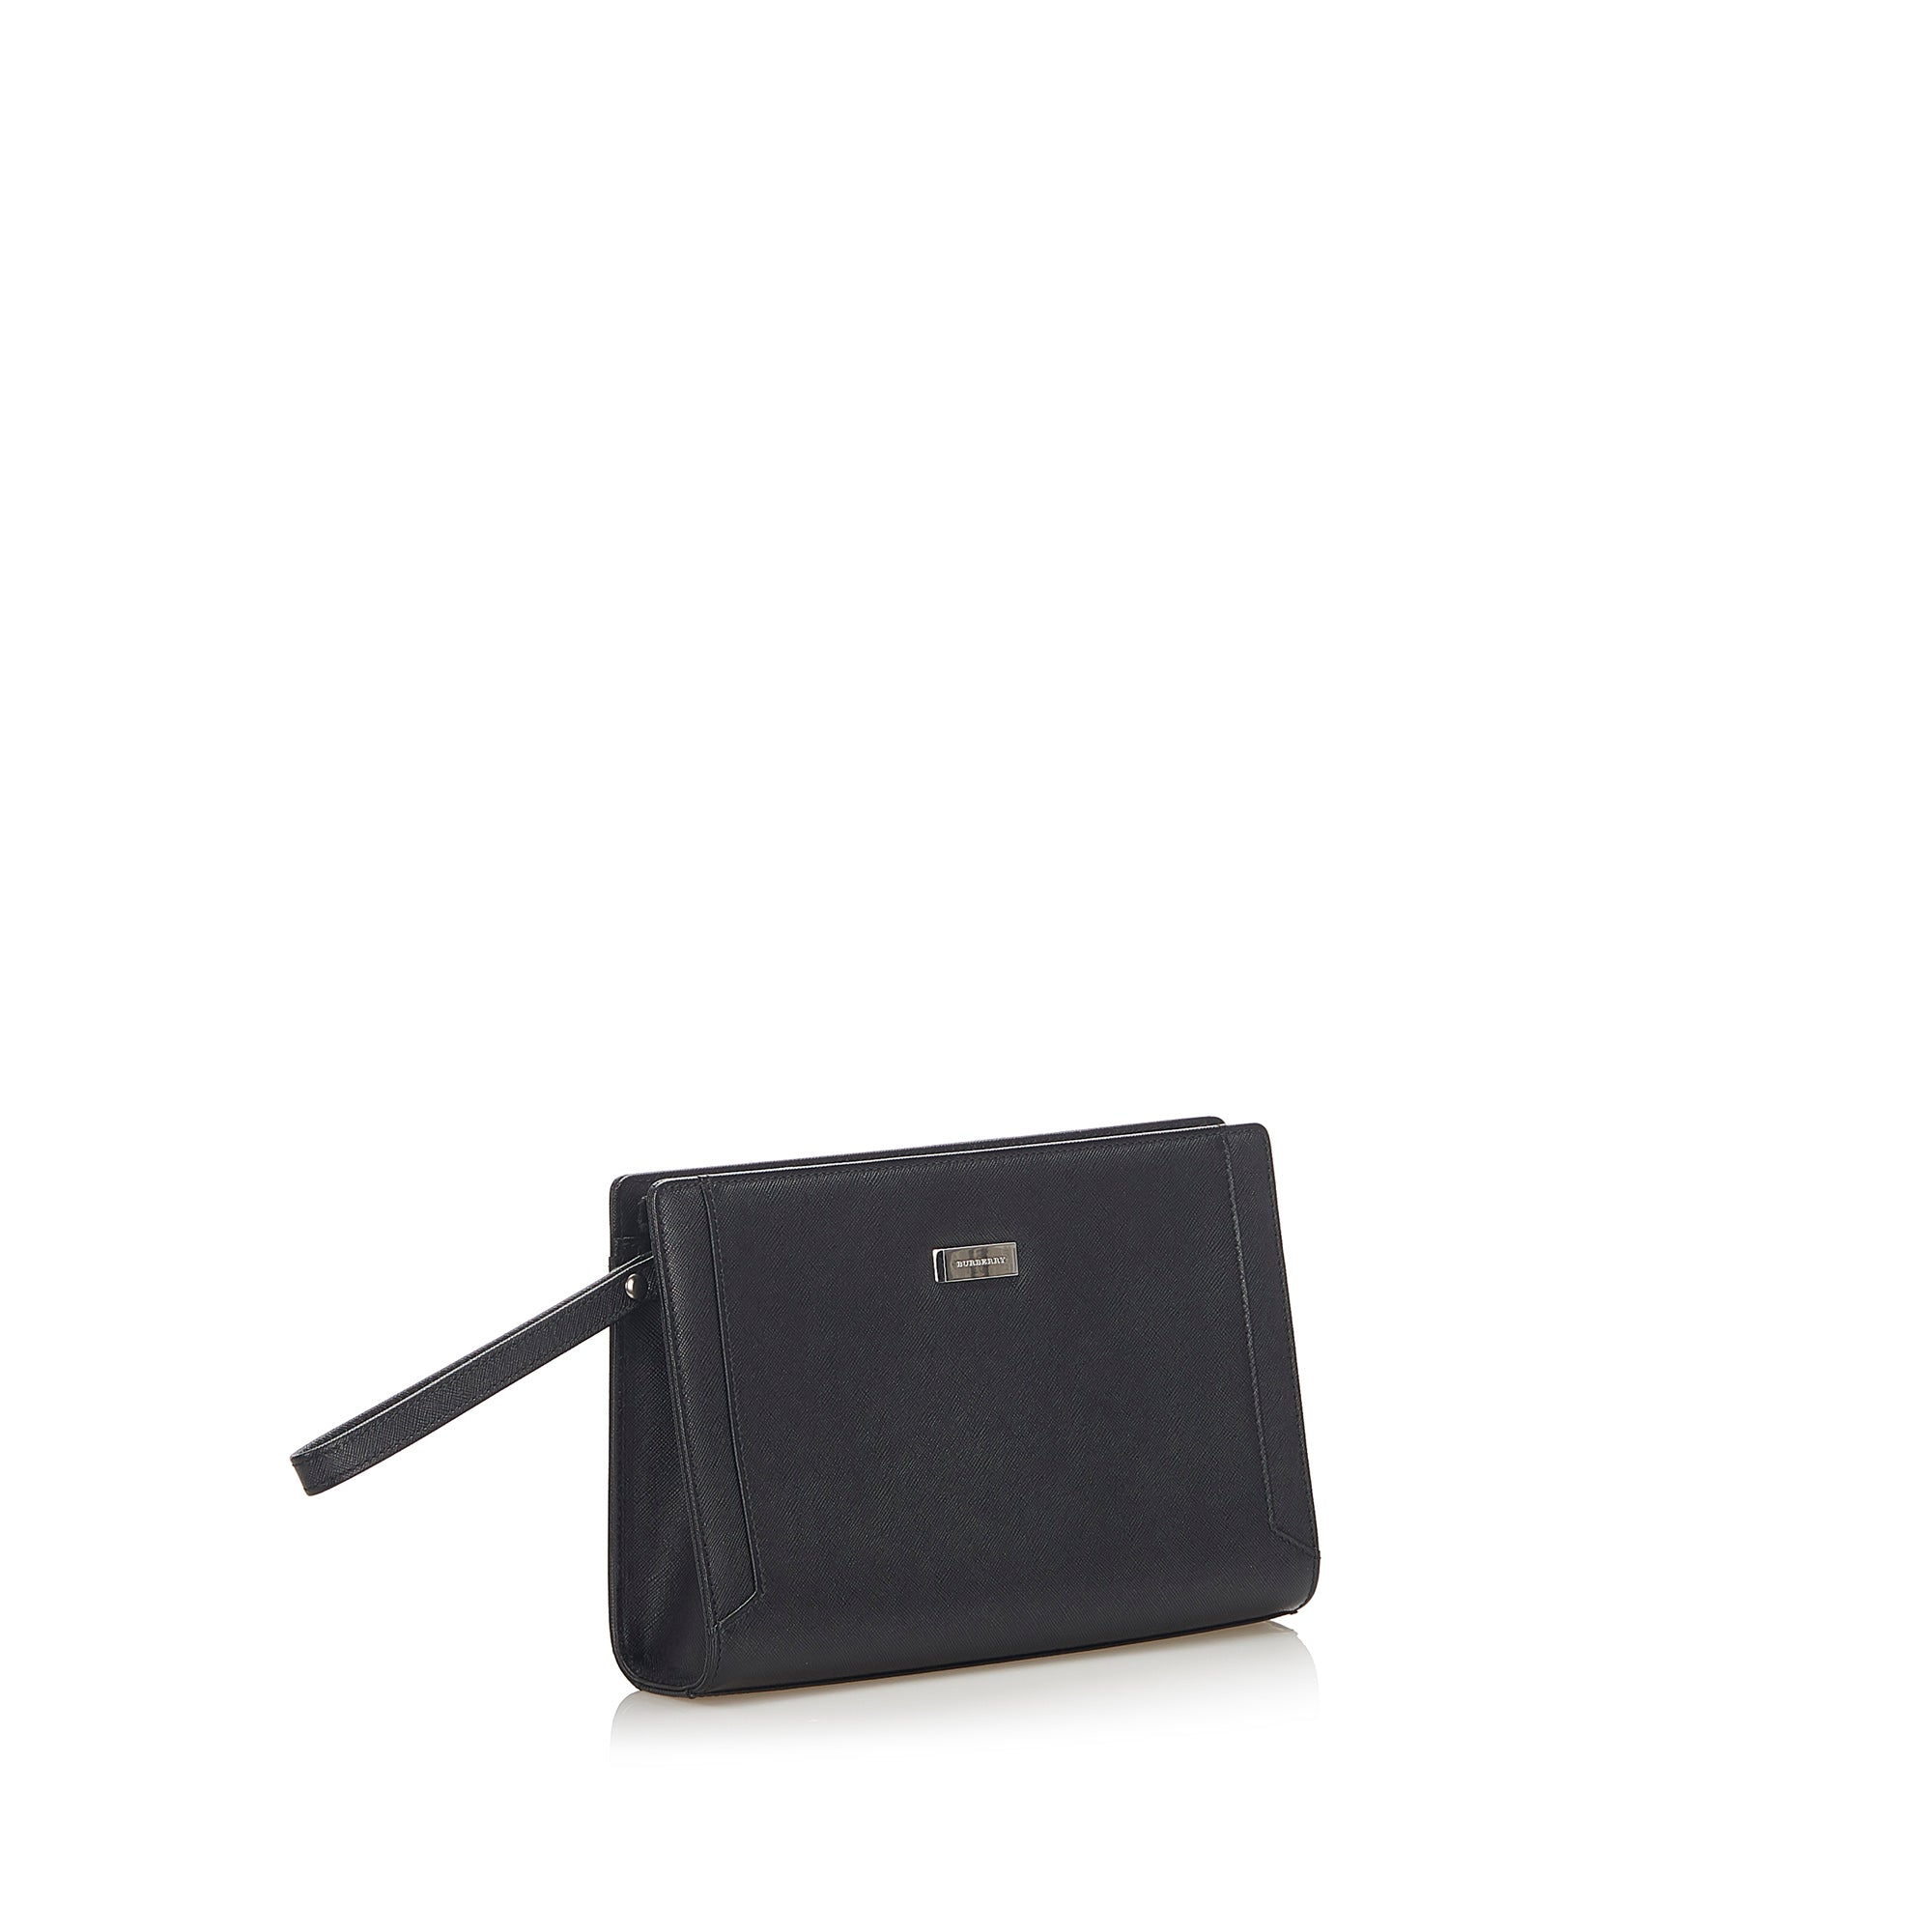 Burberry Black Leather Clutch Bag